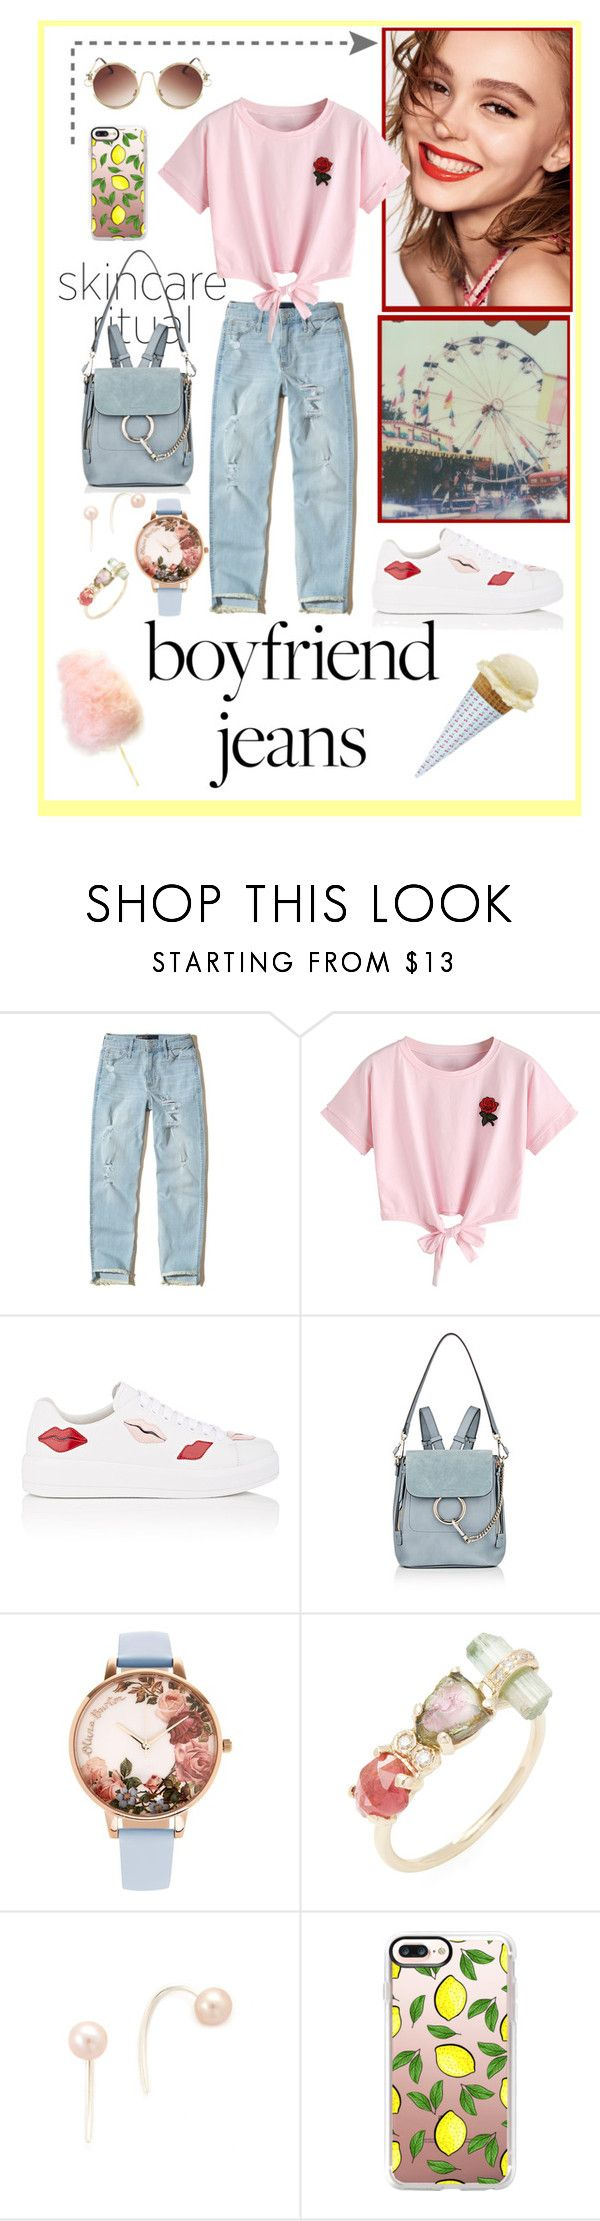 """""""Don't need a boyfriend to wear boyfriend jeans"""" by cupcakecouturegirls ❤ liked on Polyvore featuring Naomi Campbell, Polaroid, Hollister Co., WithChic, Prada, Chloé, Olivia Burton, Jacquie Aiche, Chan Luu and Casetify"""